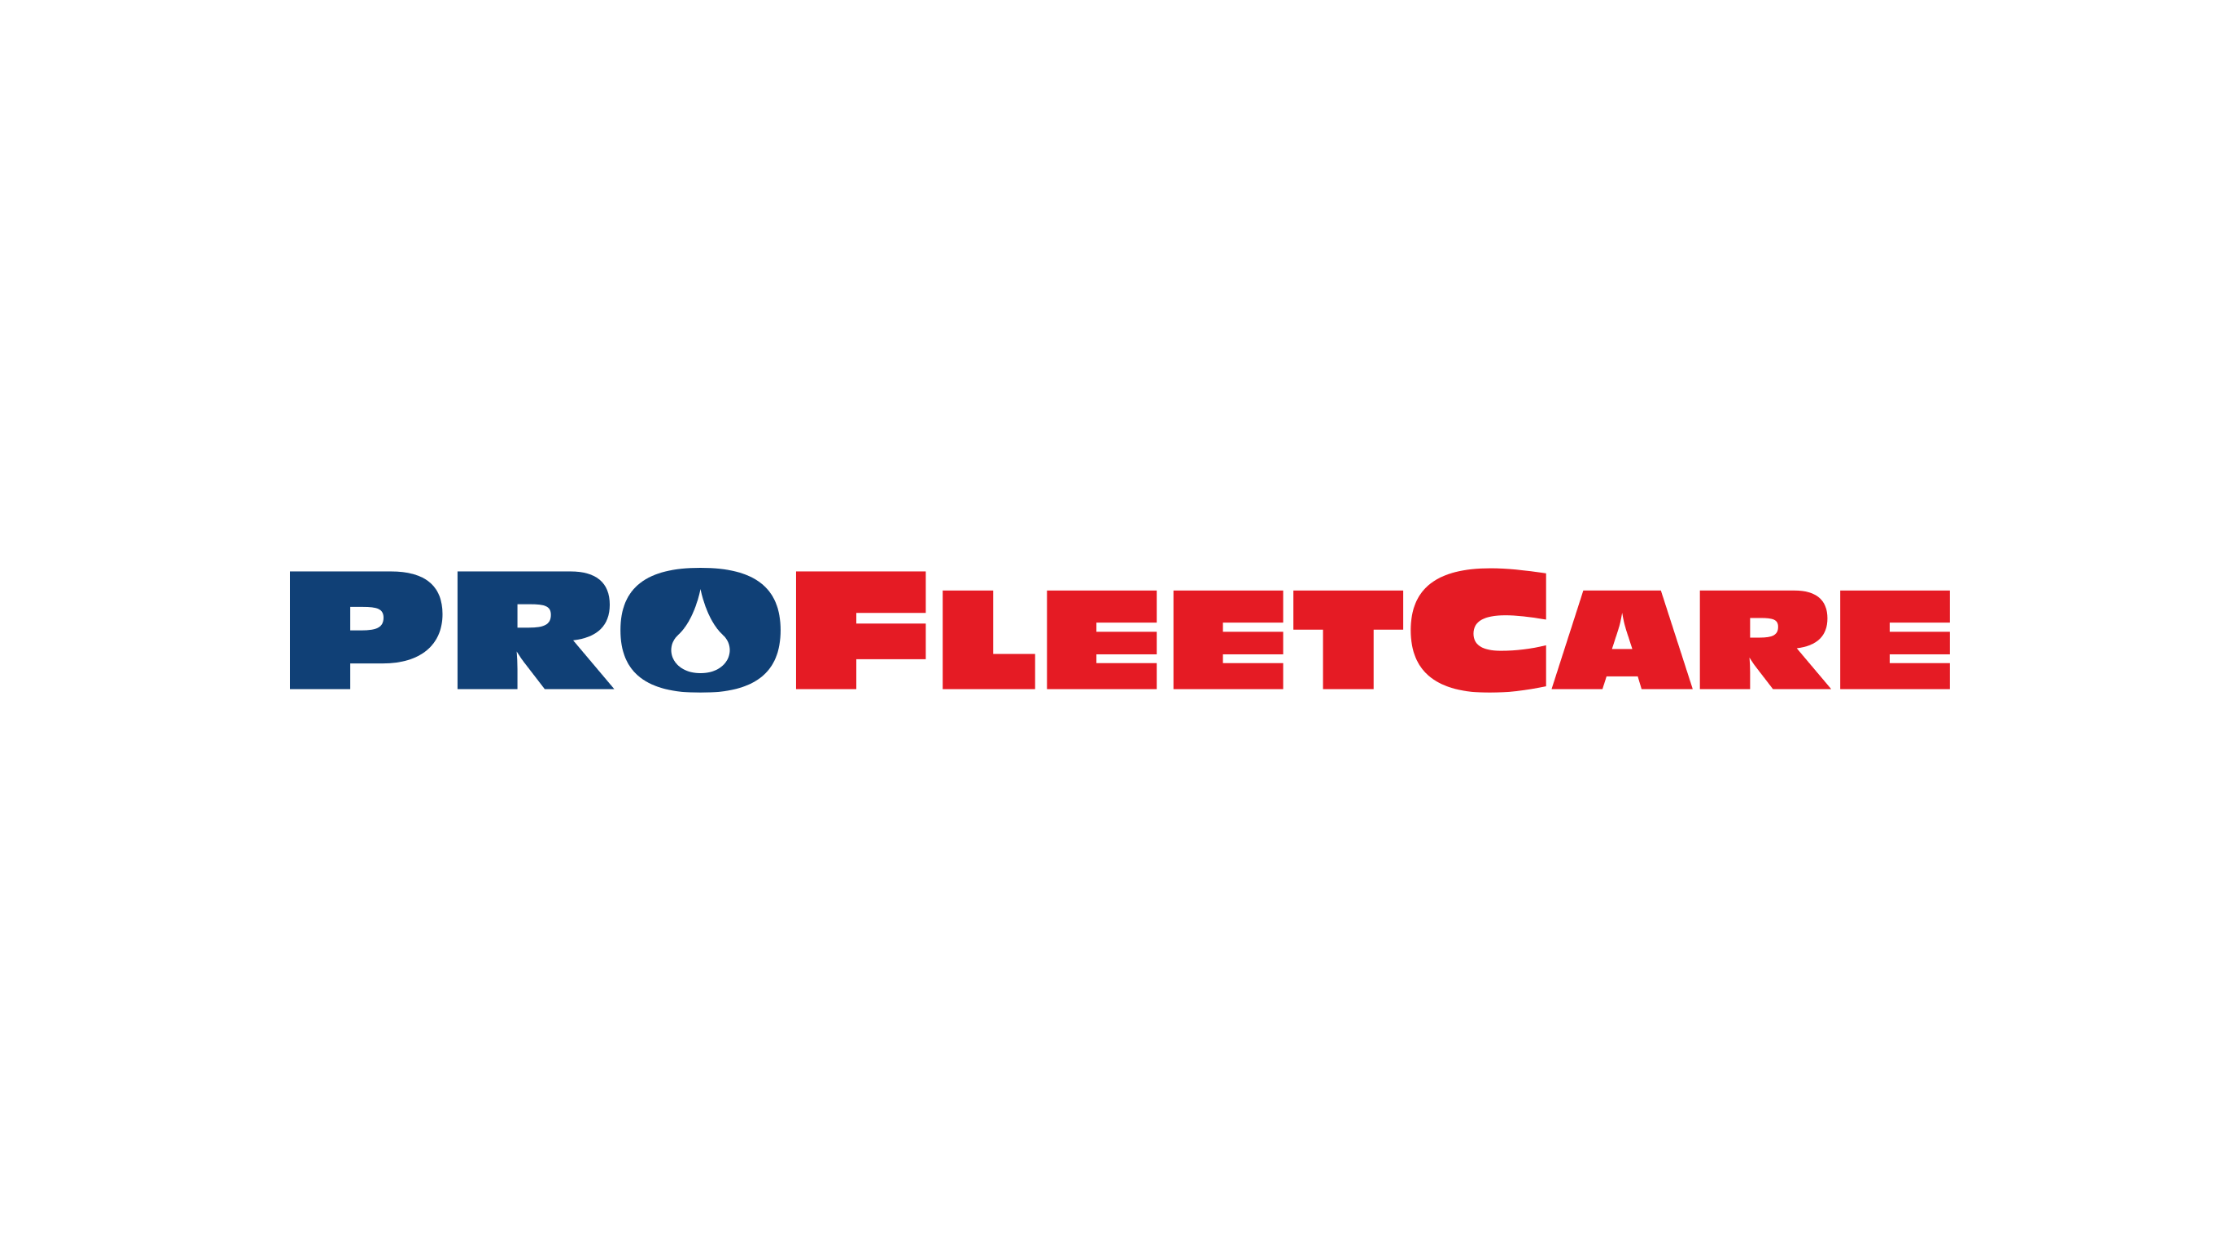 Pro Fleet Care brings its rust proofing system to SWFL